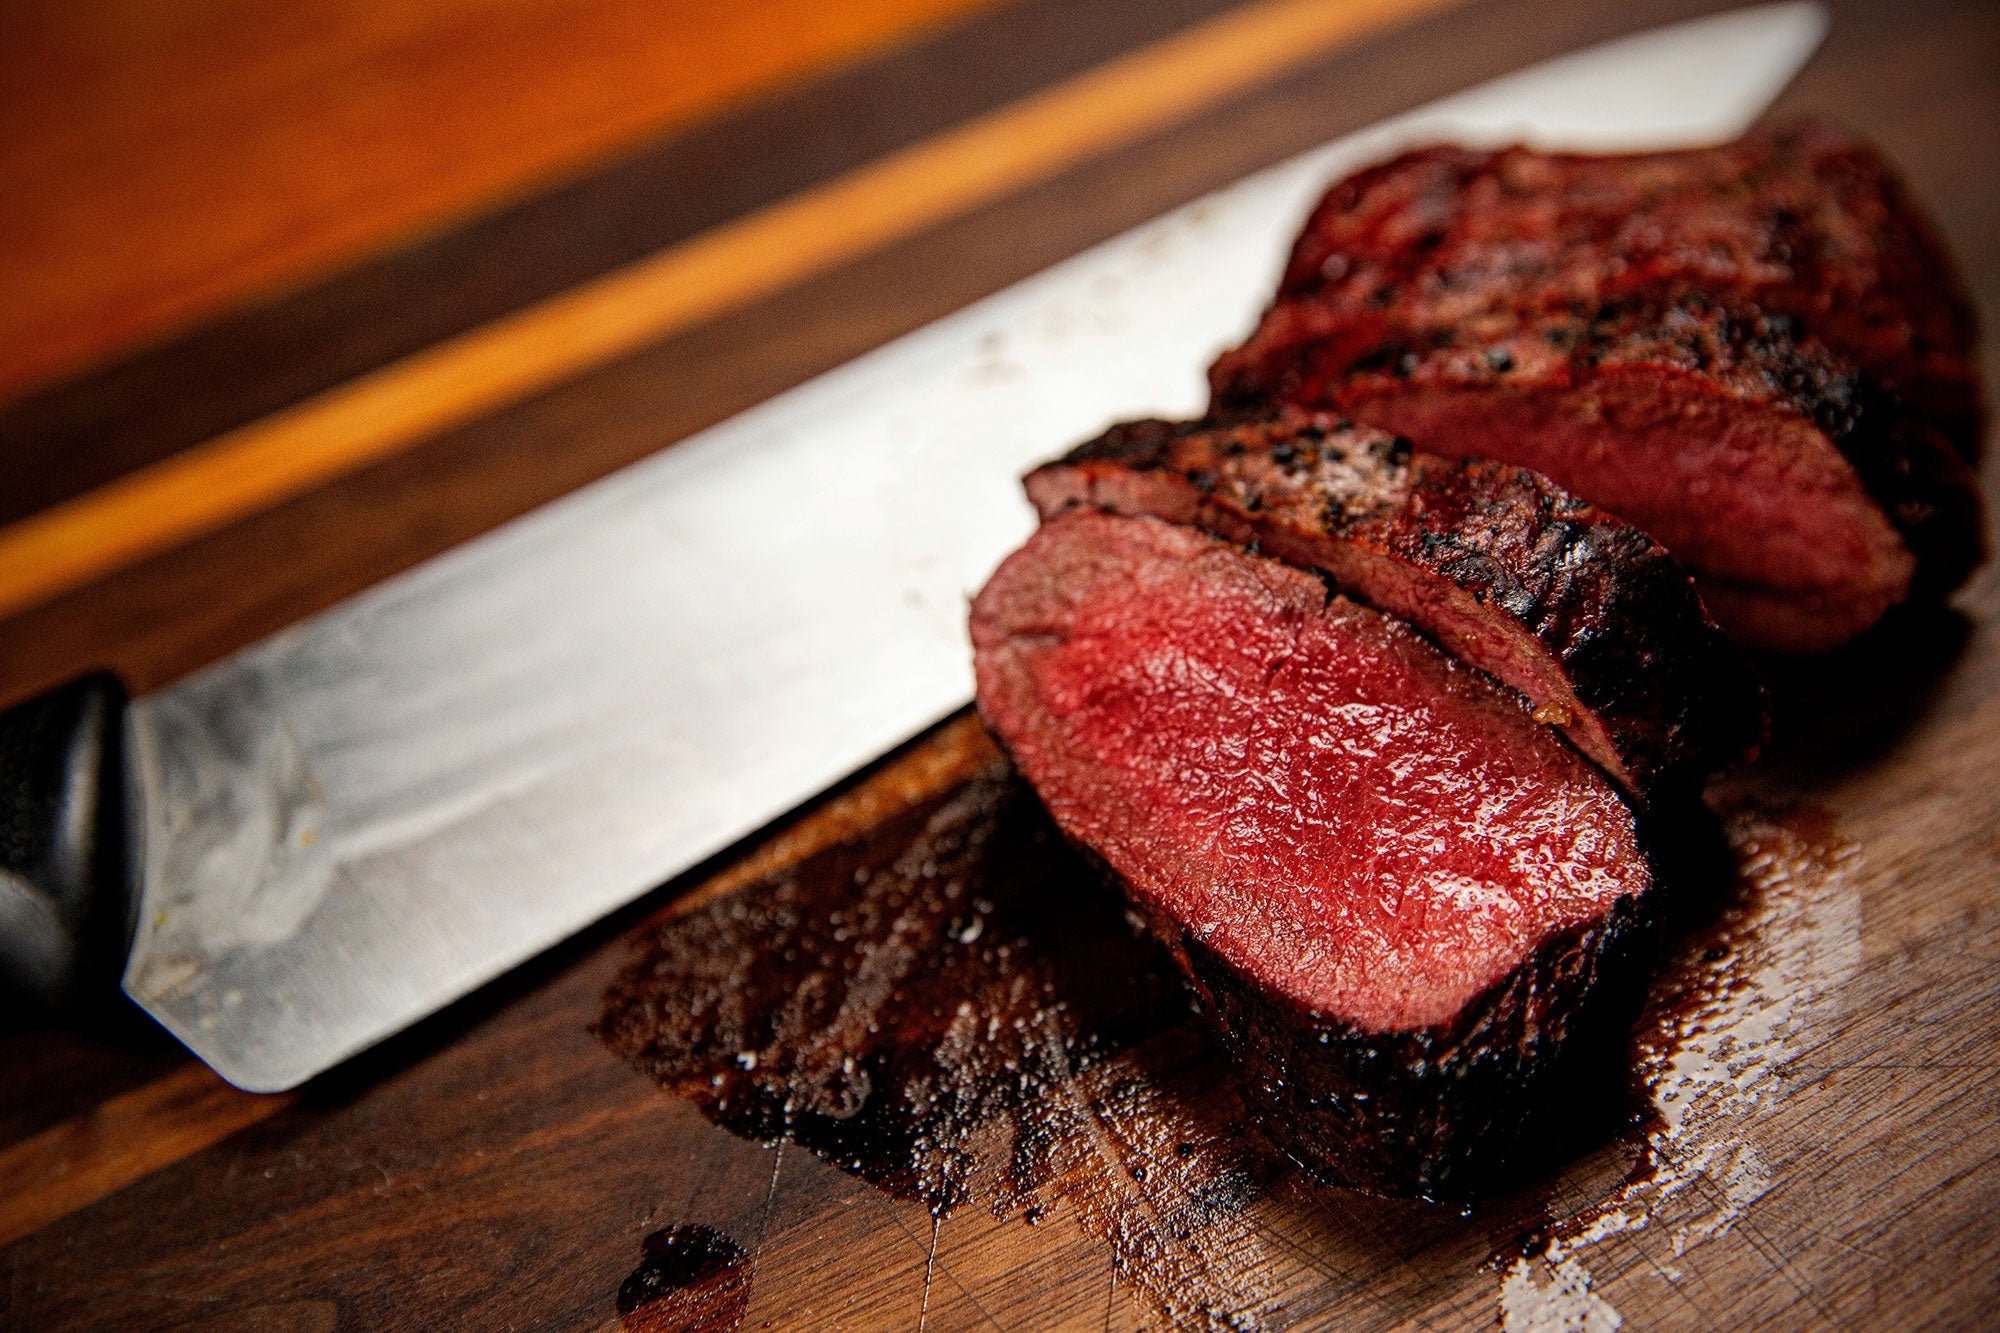 A perfectly cooked medium-rare venison steak on a cutting board.